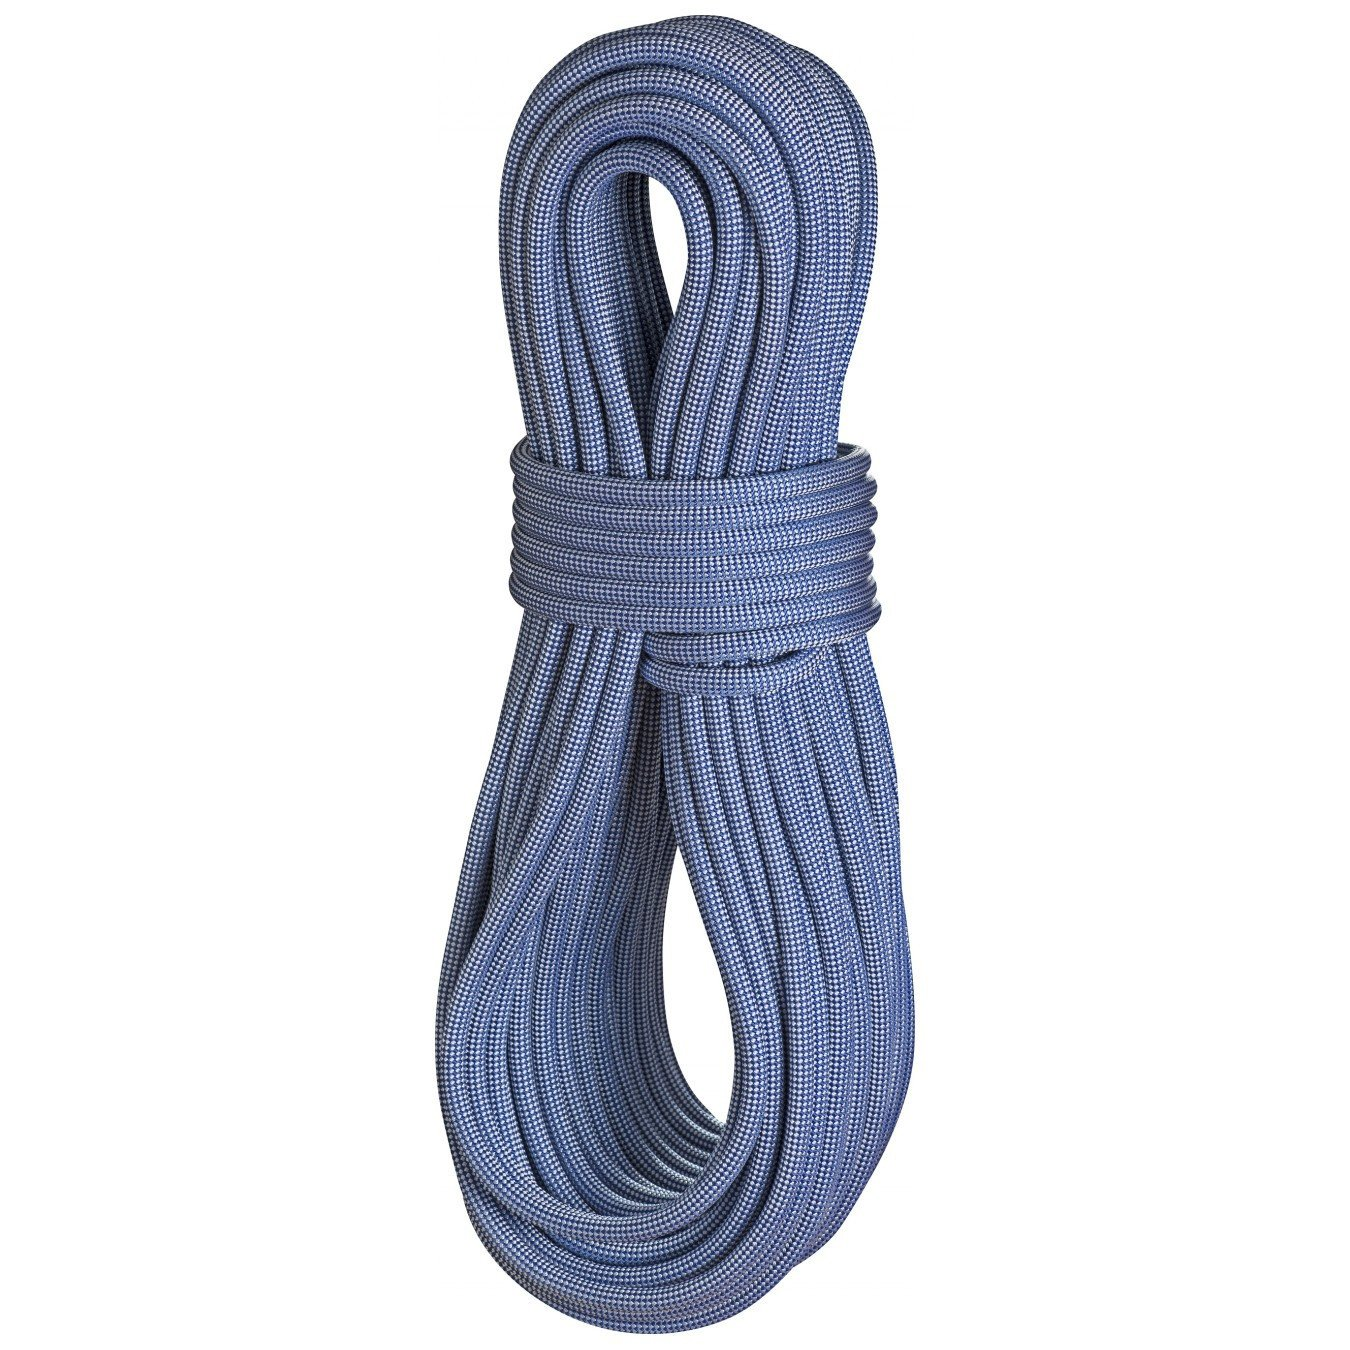 Edelrid Eagle Lite 9.5mm x 80m (Polar) climbing rope, in blue colour